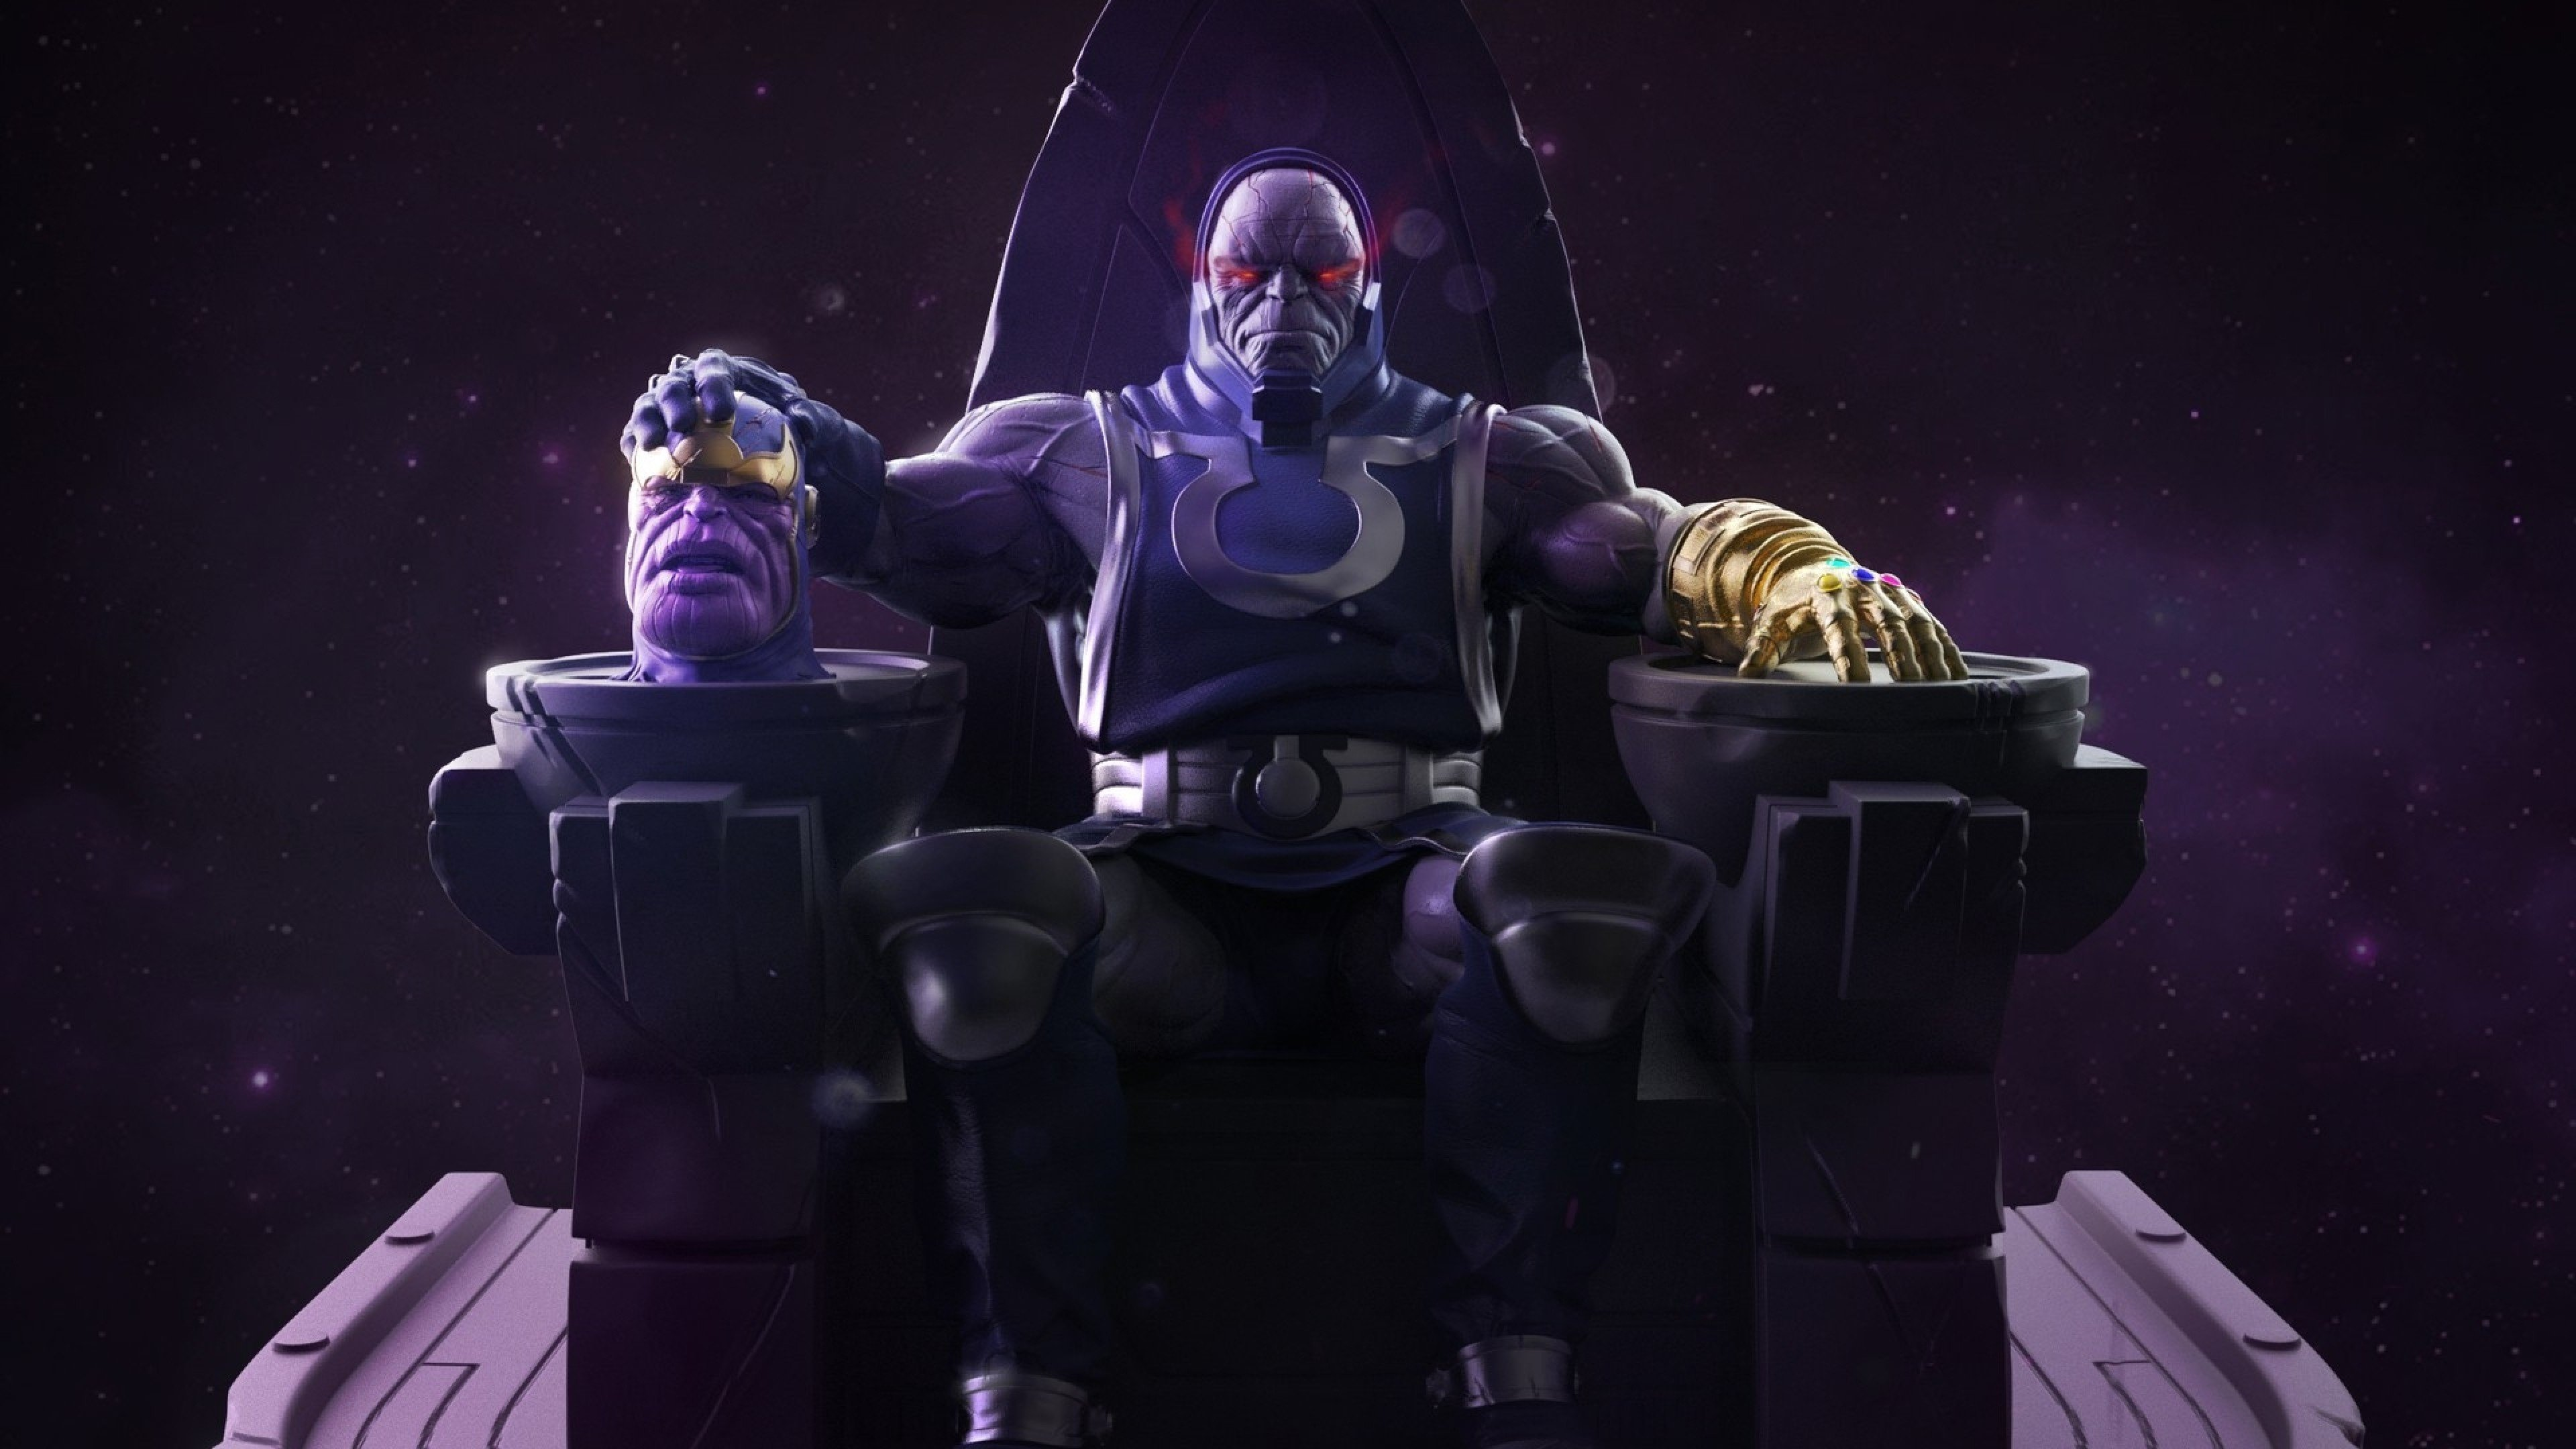 Darkseid HD Wallpaper 83 images 3840x2160